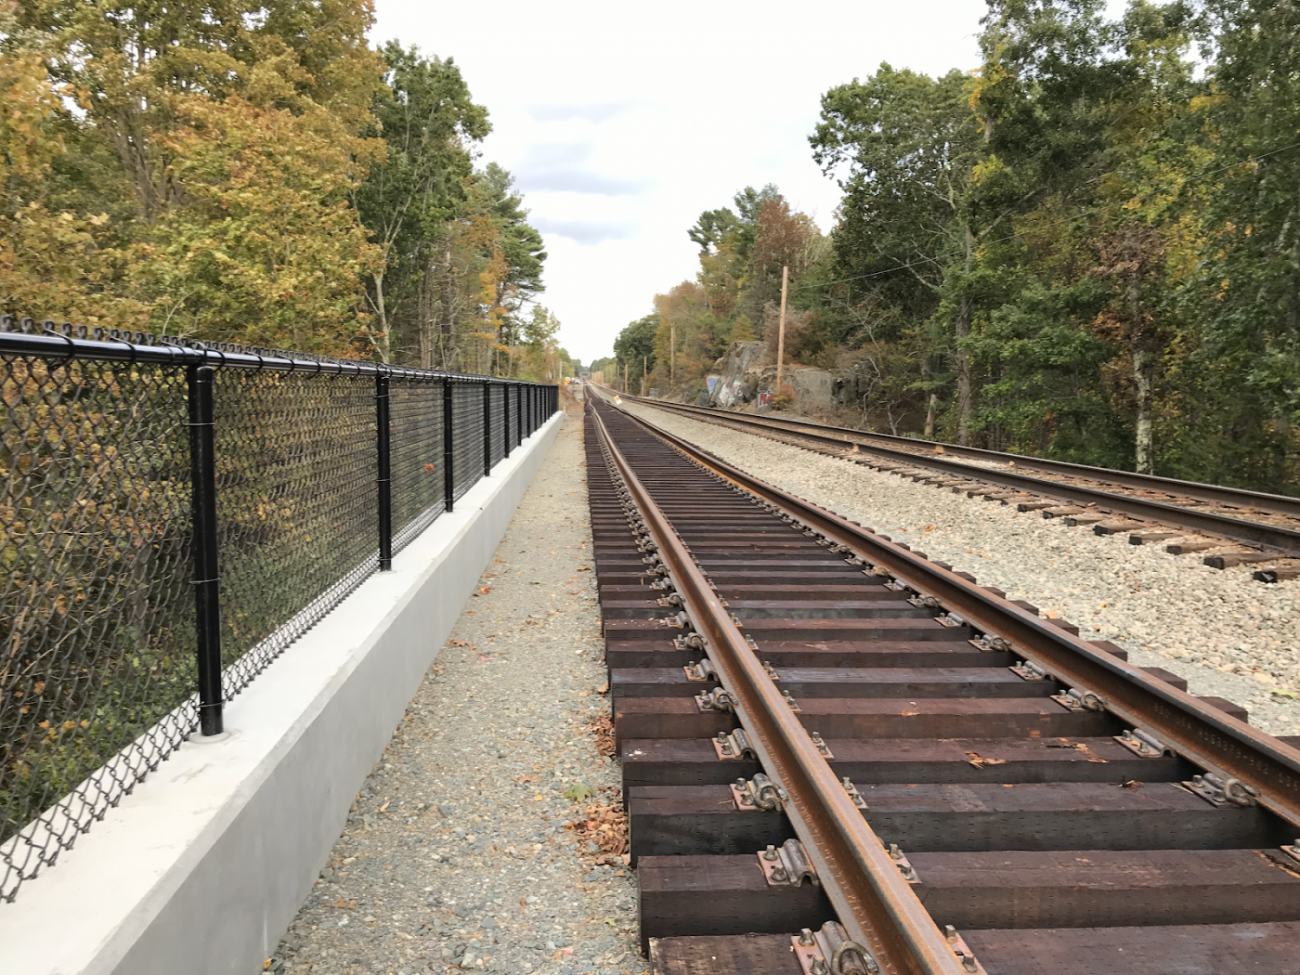 Completed retaining wall with new second track assembled outside of Walpole Station in 2019